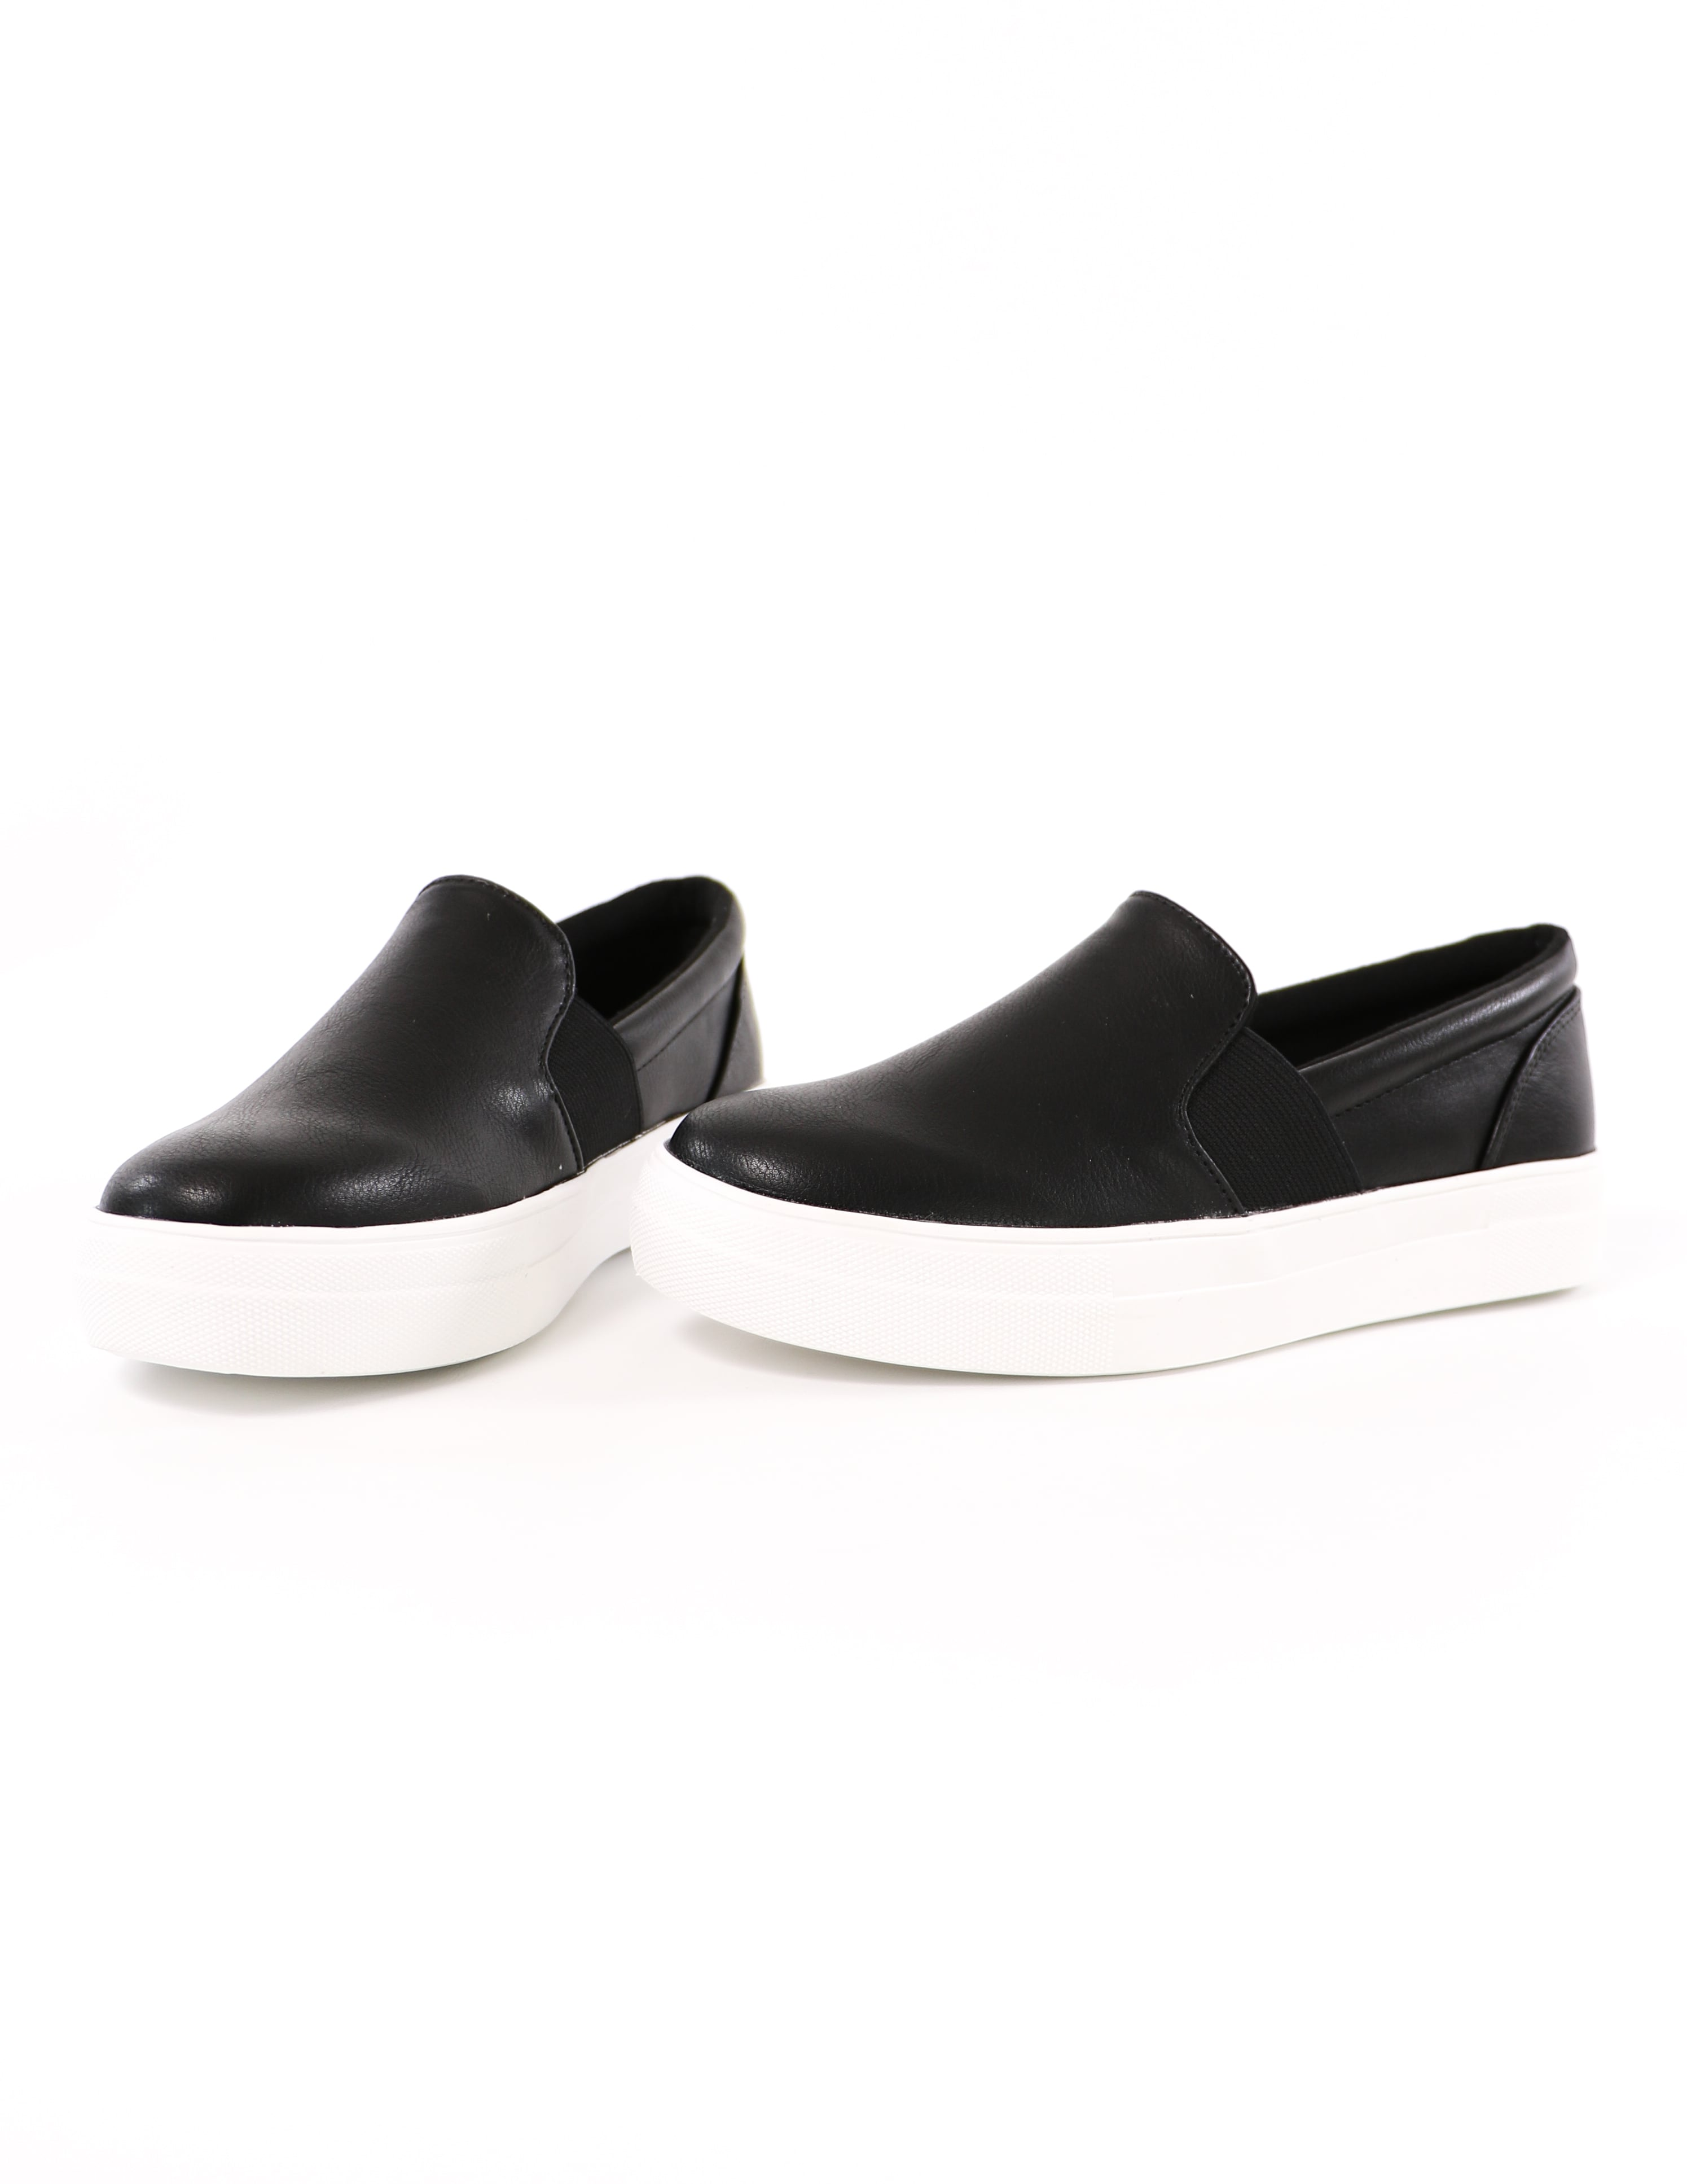 black kickin' it sole-o slip on sneakers on white background - elle bleu shoes